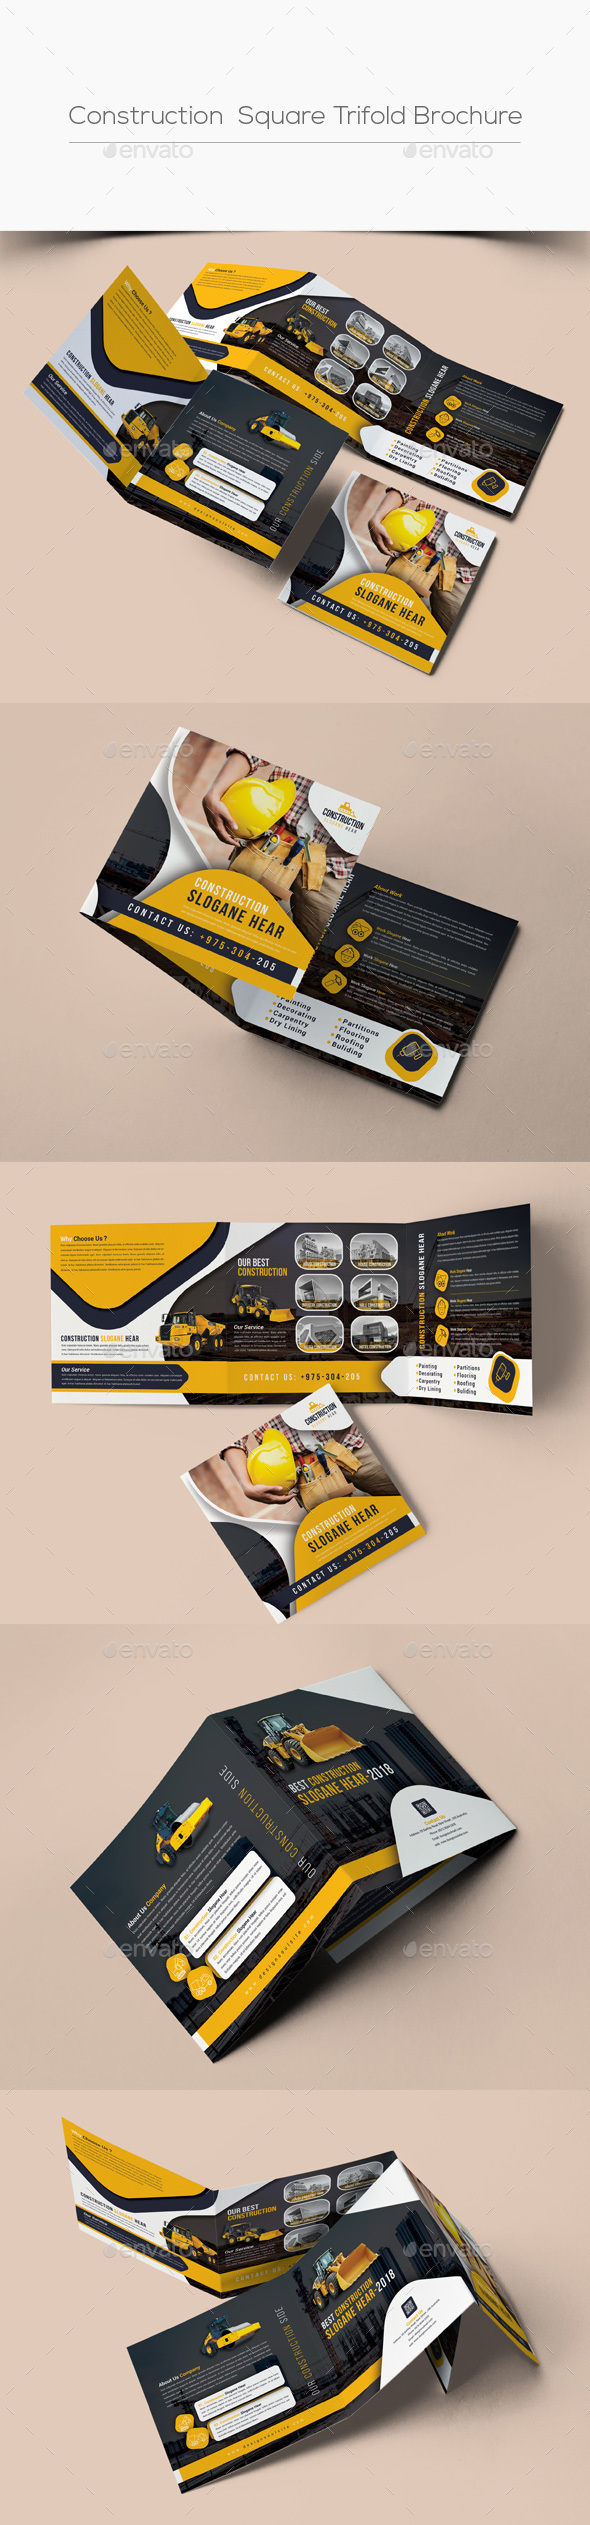 Construction Square Trifold Brochure - Corporate Brochures